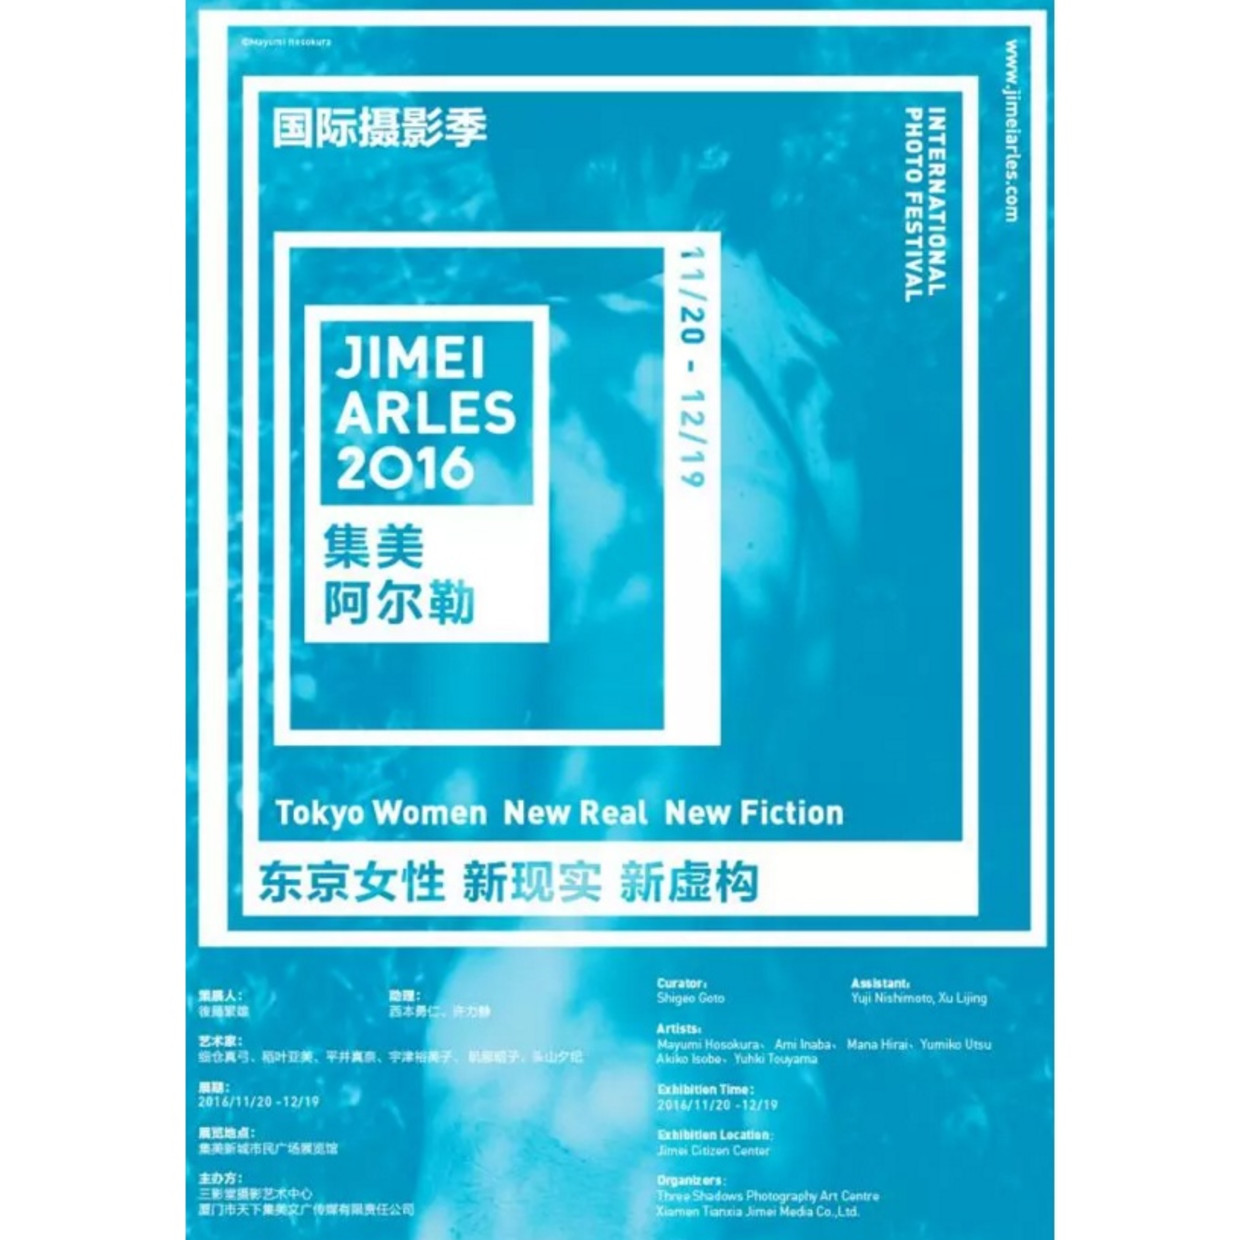 TOKYO WOMEN / NEW REAL, NEW FICTION Curated by SHIGEO GOTO